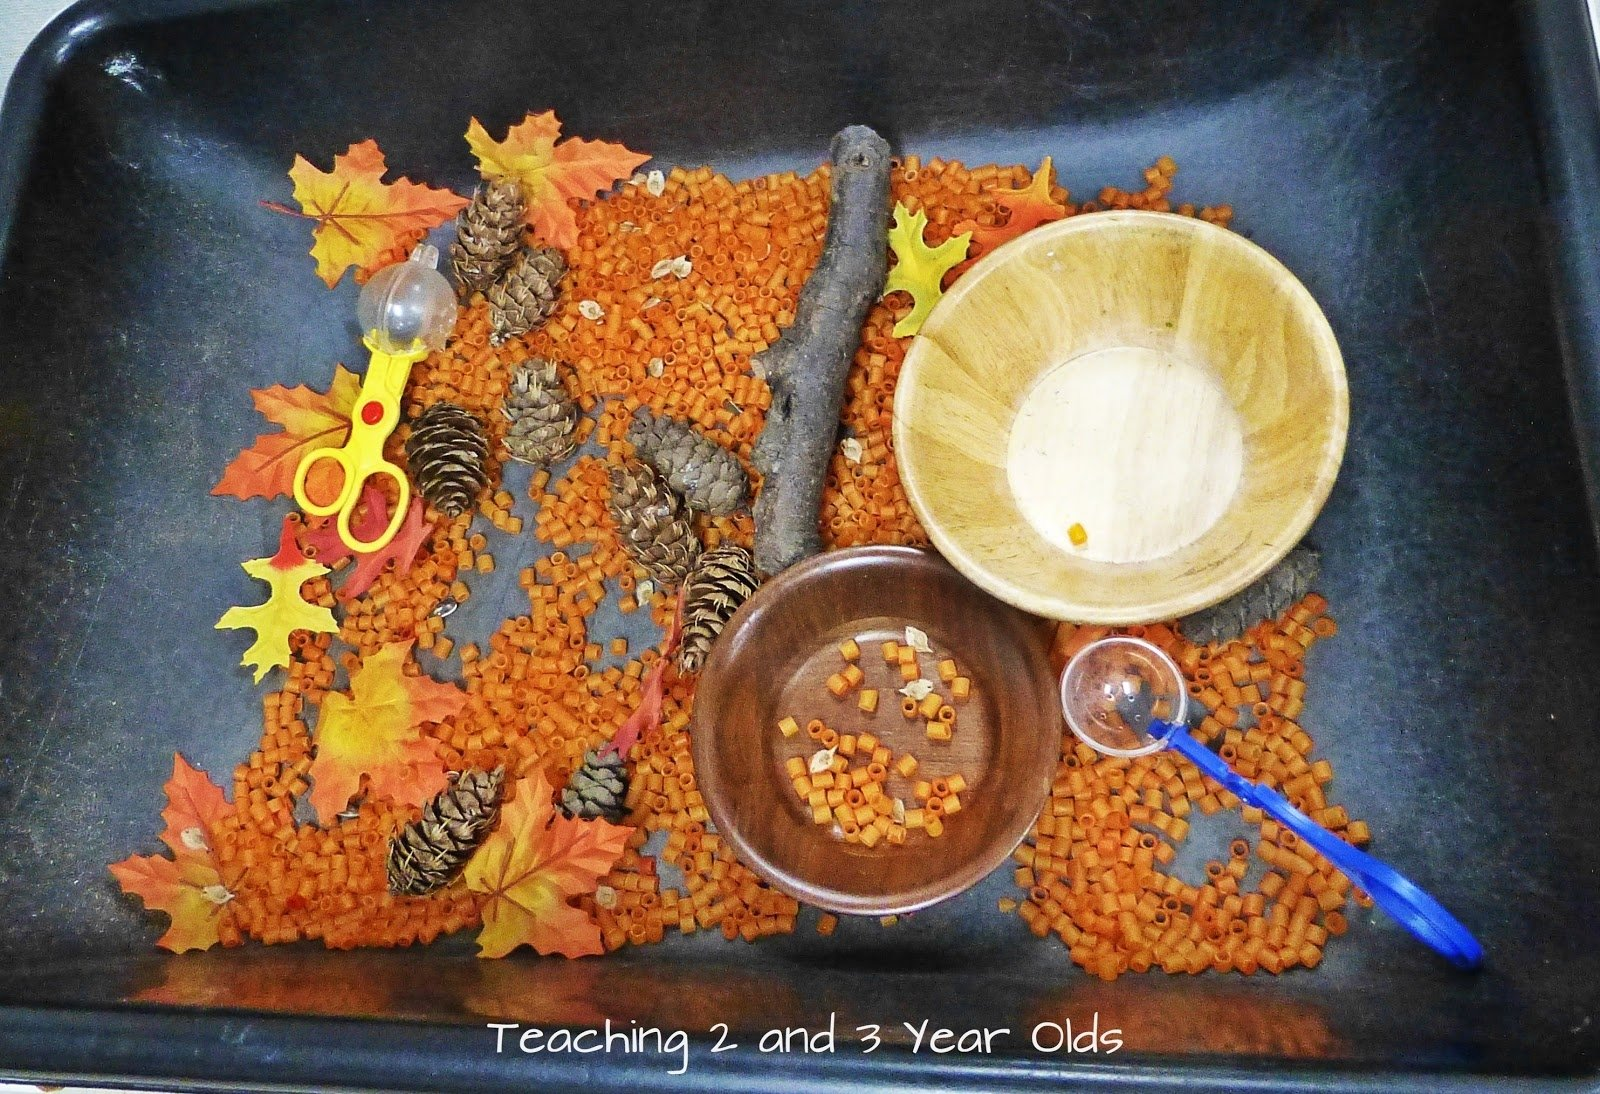 10 Nice Sensory Table Ideas For Toddlers 54 sensory table ideas for toddlers 10 sensory table ideas for